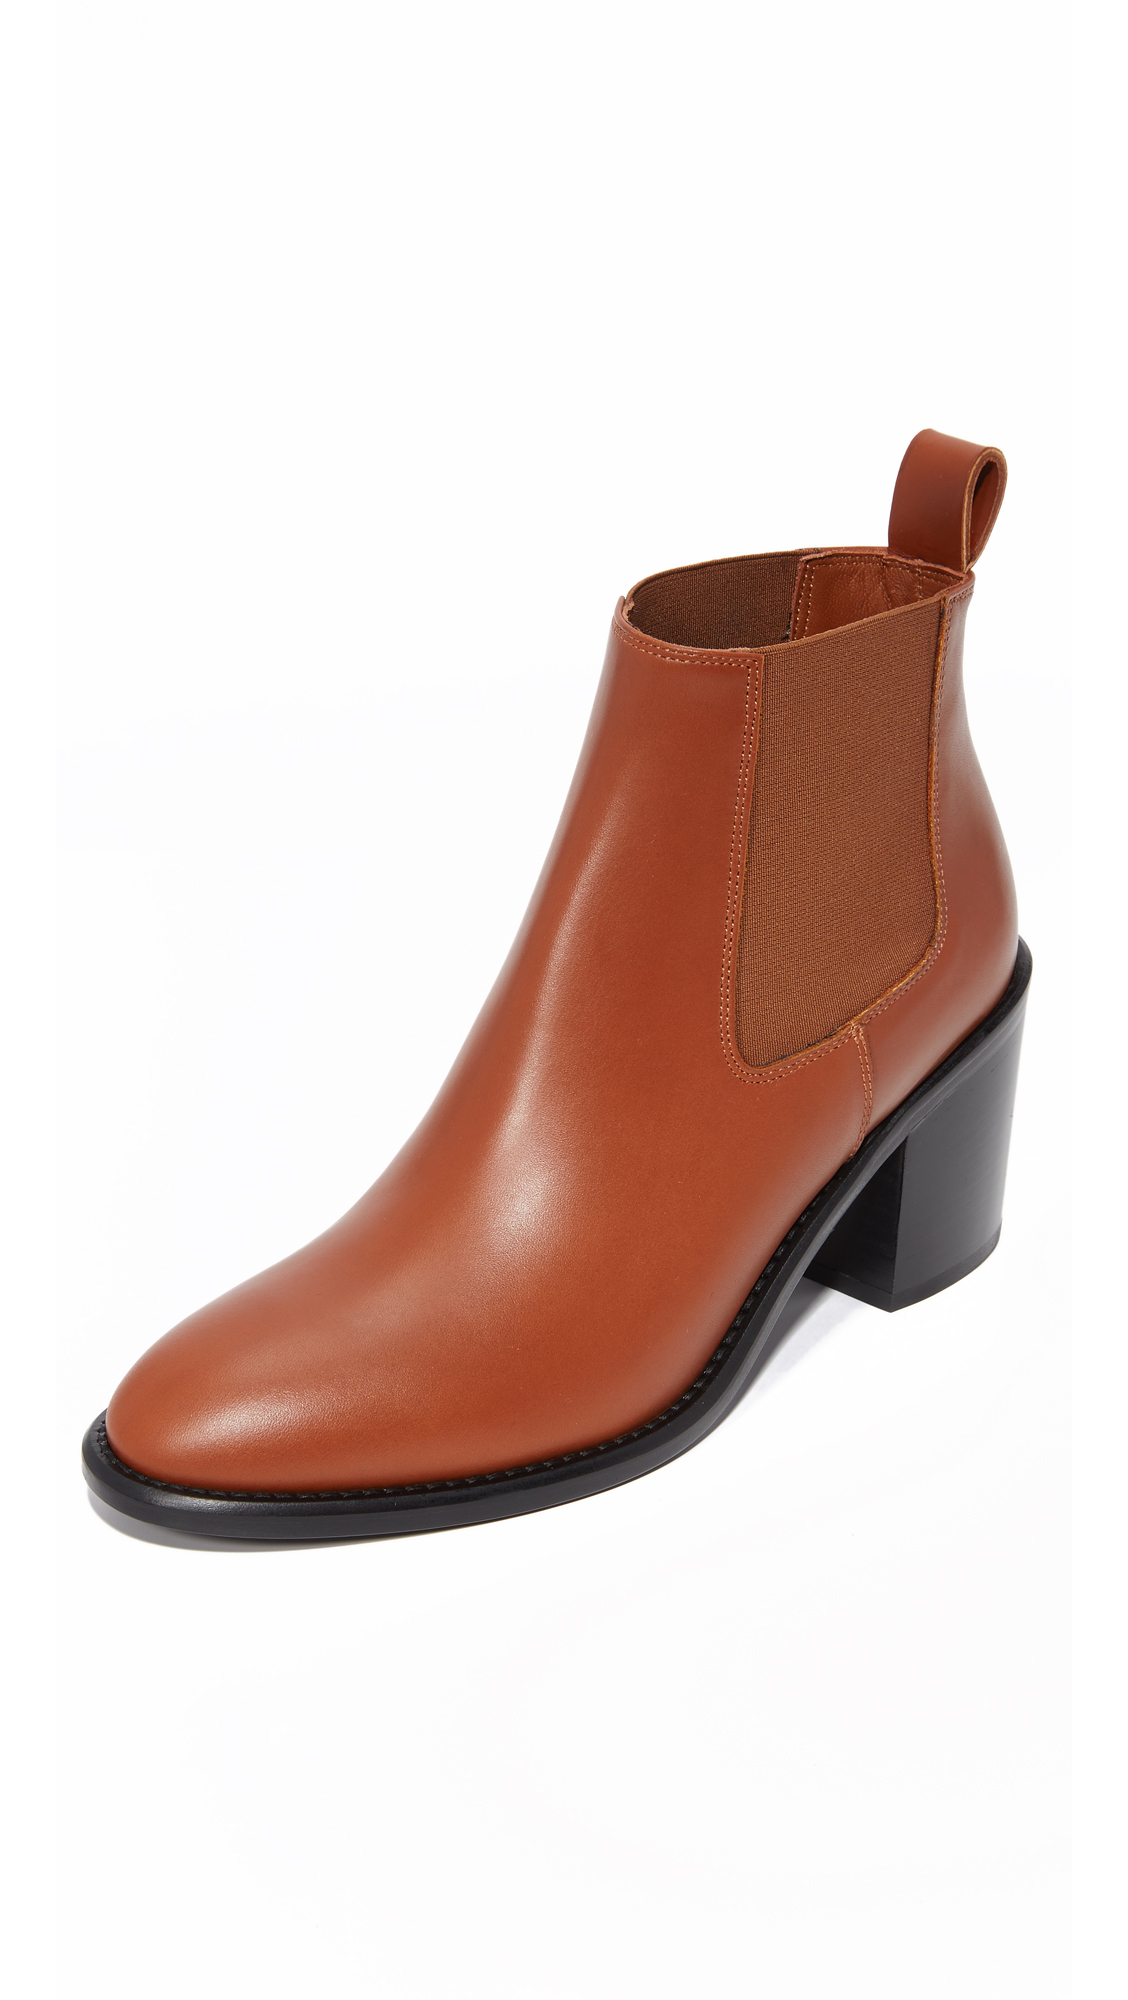 Jenni Kayne Heeled Chelsea Booties - Saddle